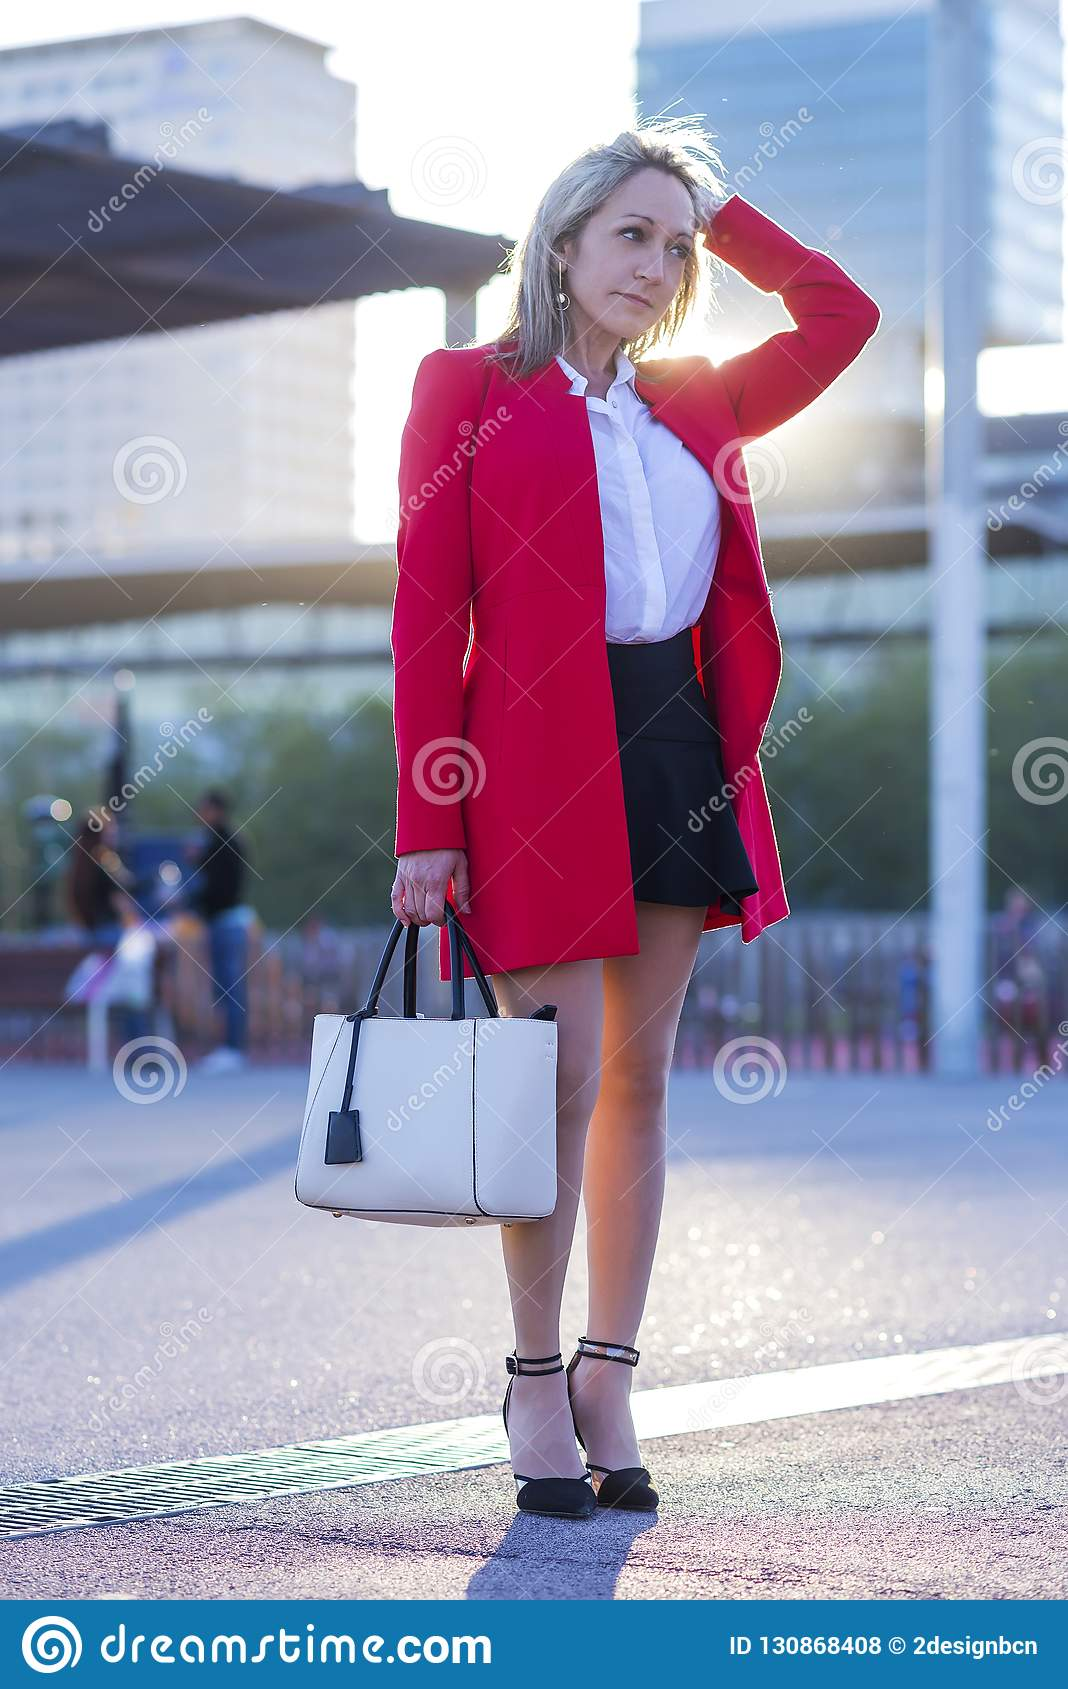 400273f27936 Elegant Blonde Woman Standing In The Street Wearing Red Jacket Stock ...